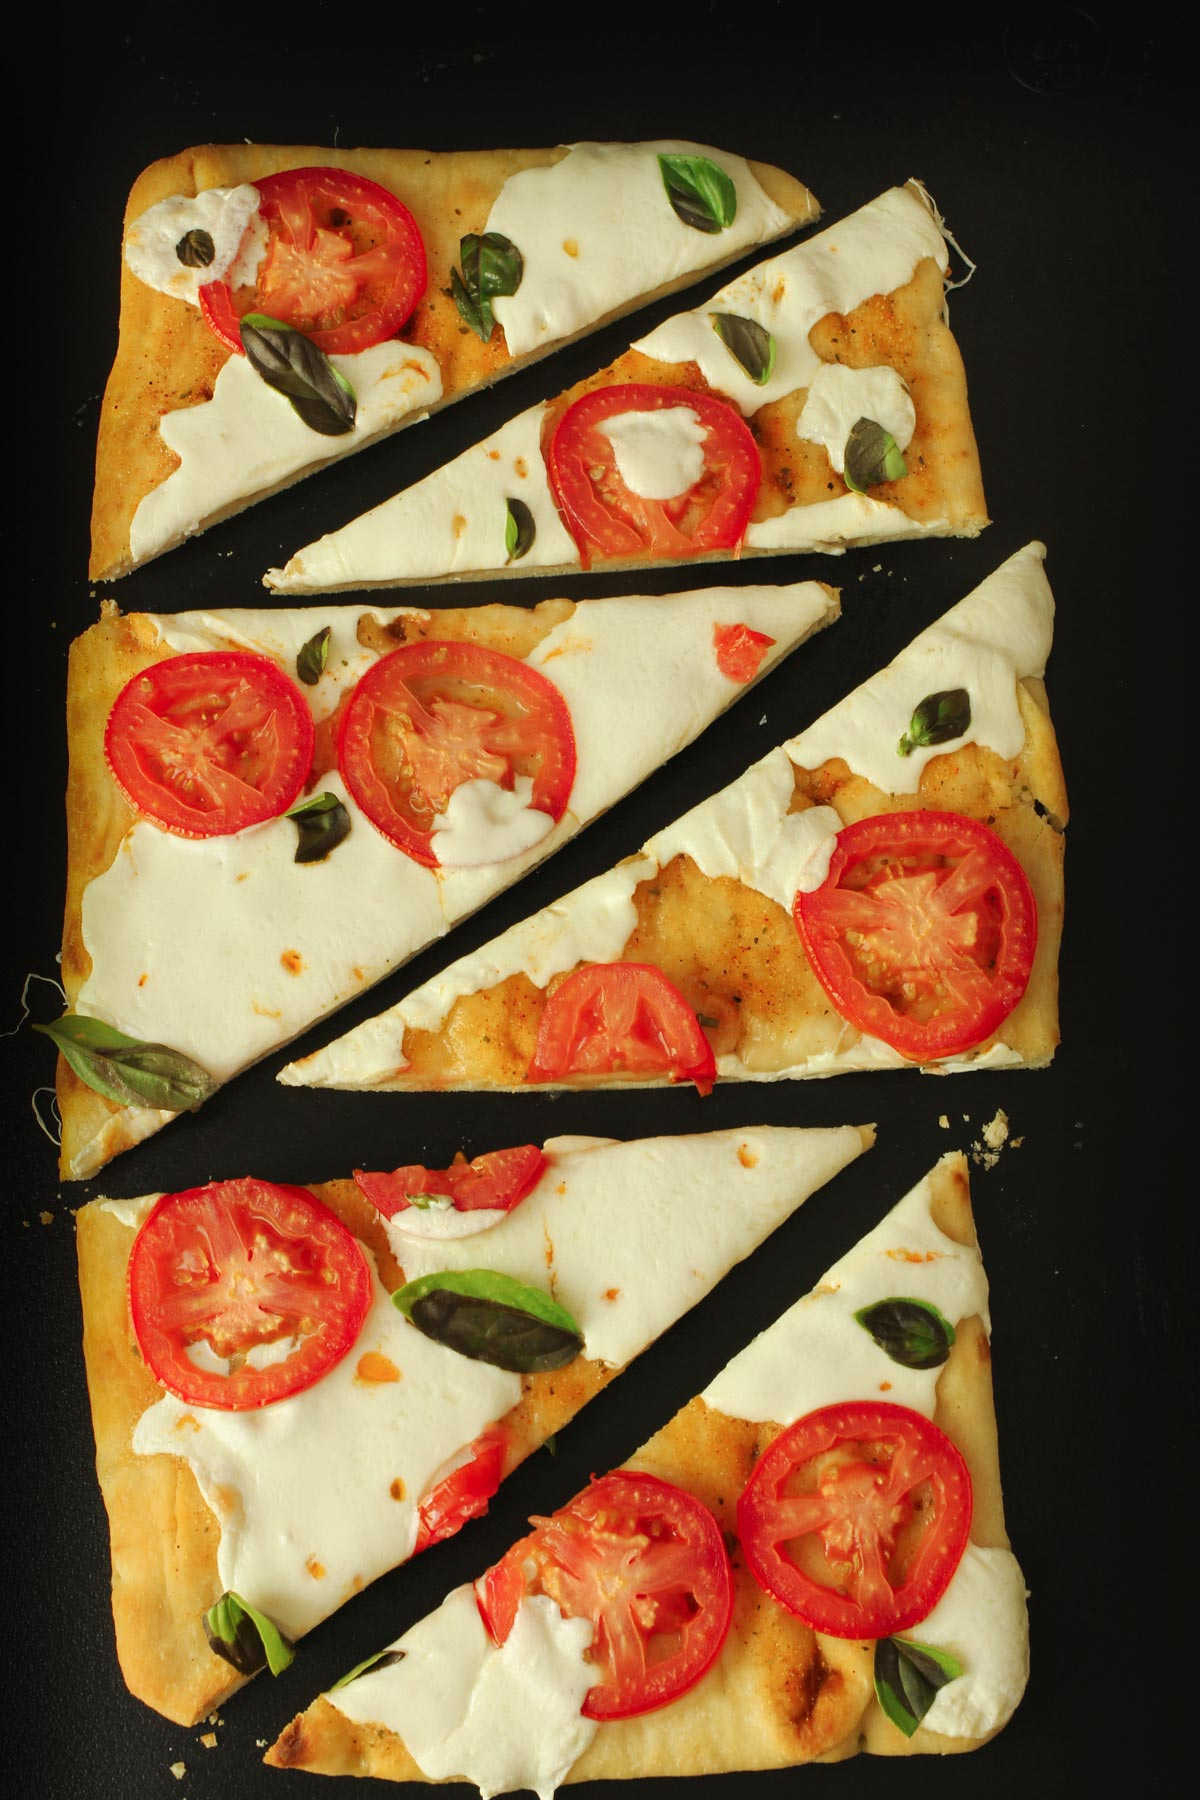 completed flatbread pizza sliced on black cutting board.